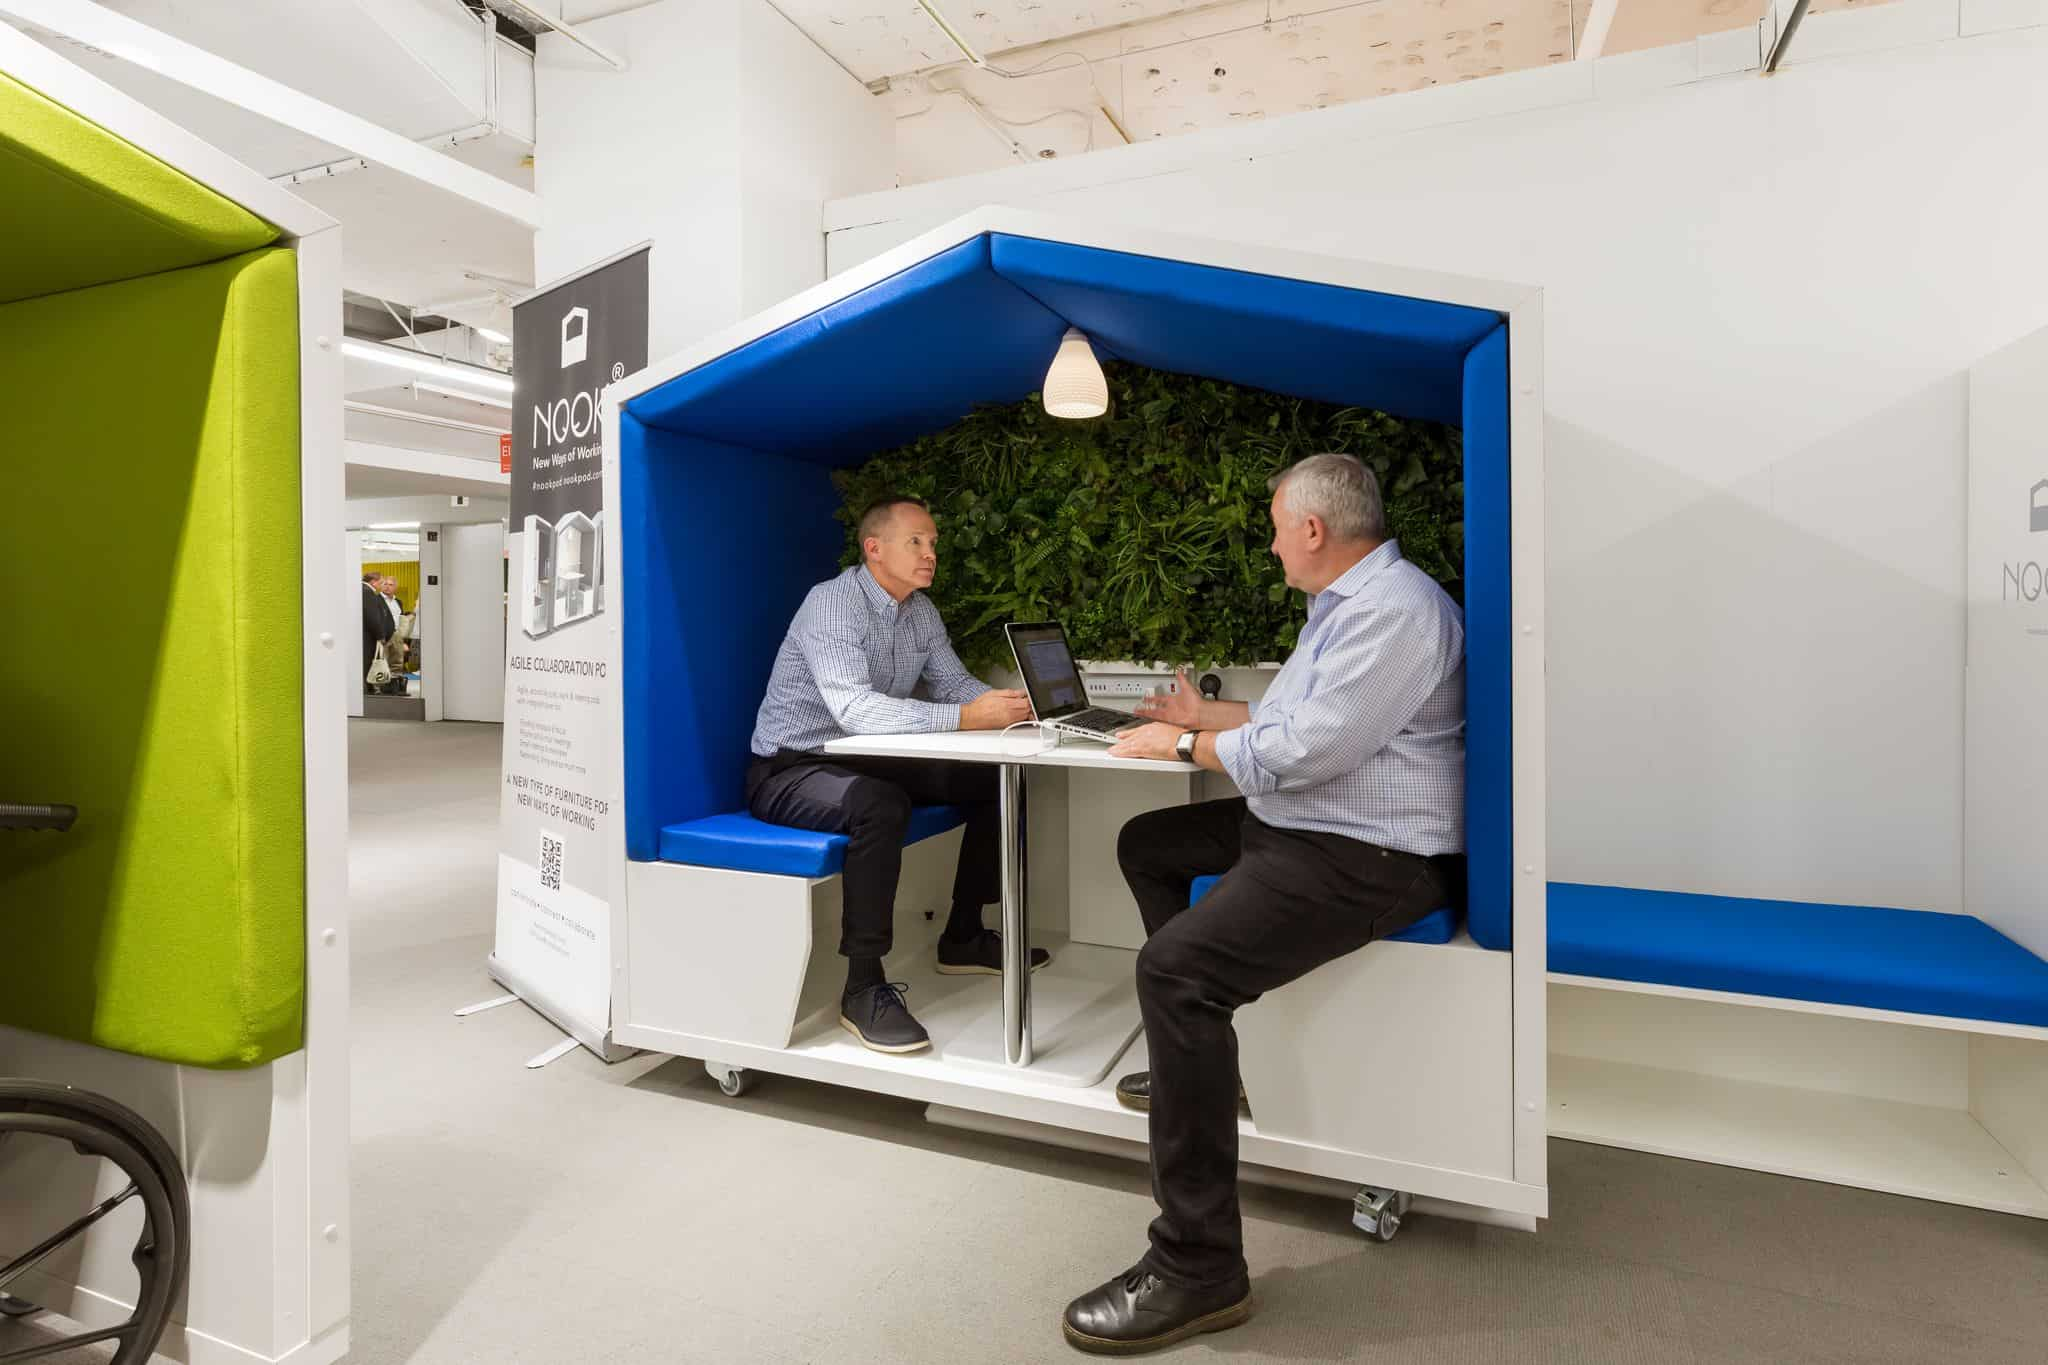 Resimerical mobile collaboration nookpod with LED lighting and power for charging